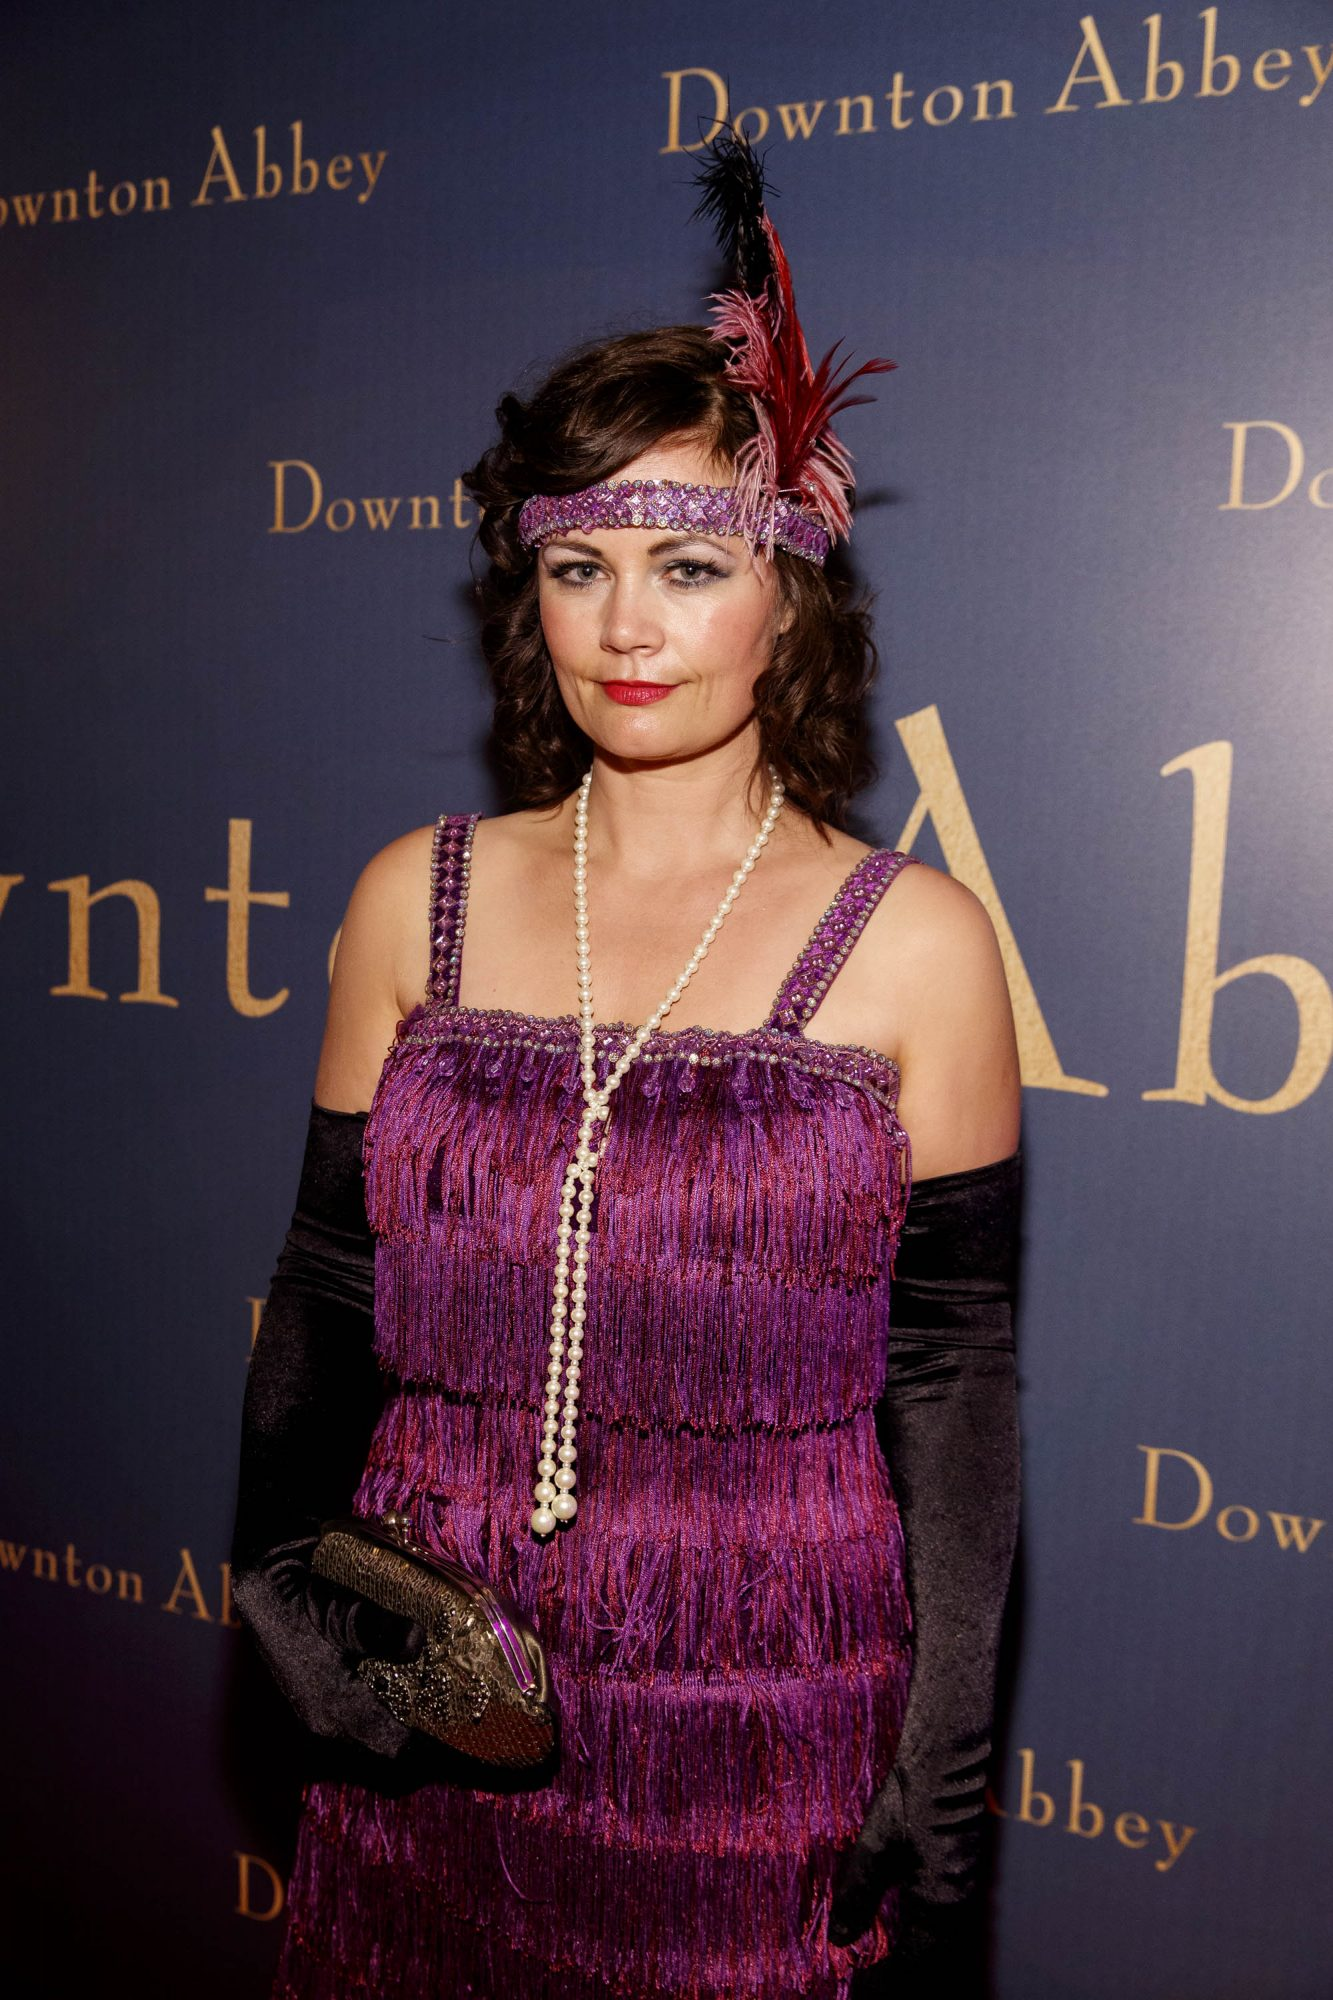 Rachel Pilkington pictured at the Universal Pictures Irish premiere screening of DOWNTON ABBEY at The Stella Theatre, Rathmines. Releasing in cinemas across Ireland from this Friday September 13th, starring the original cast, the worldwide phenomenon DOWNTON ABBEY, becomes a grand motion picture event. Picture Andres Poveda